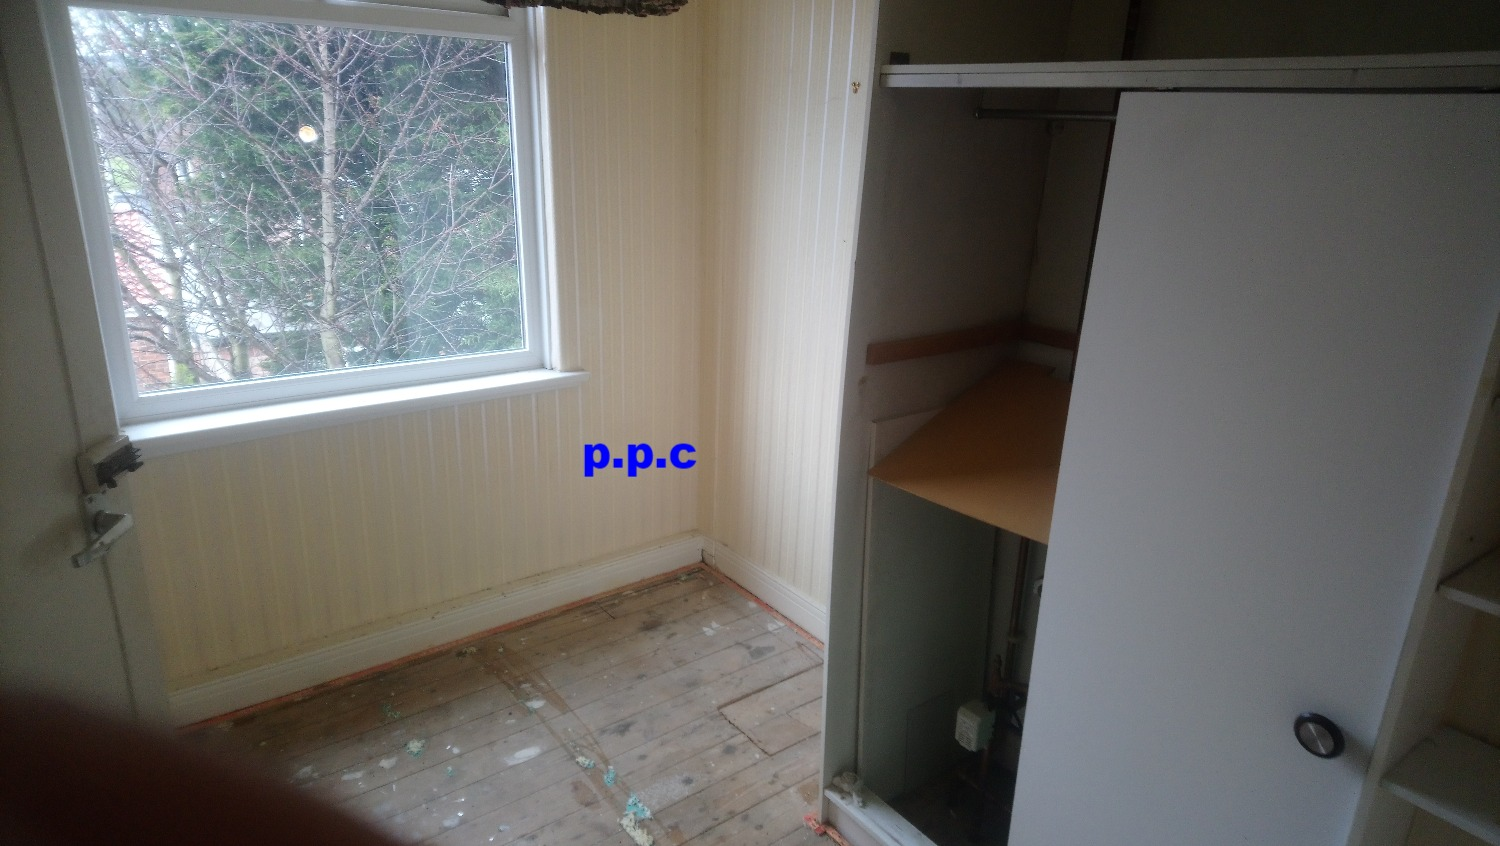 House clearance in fulwell pic 8